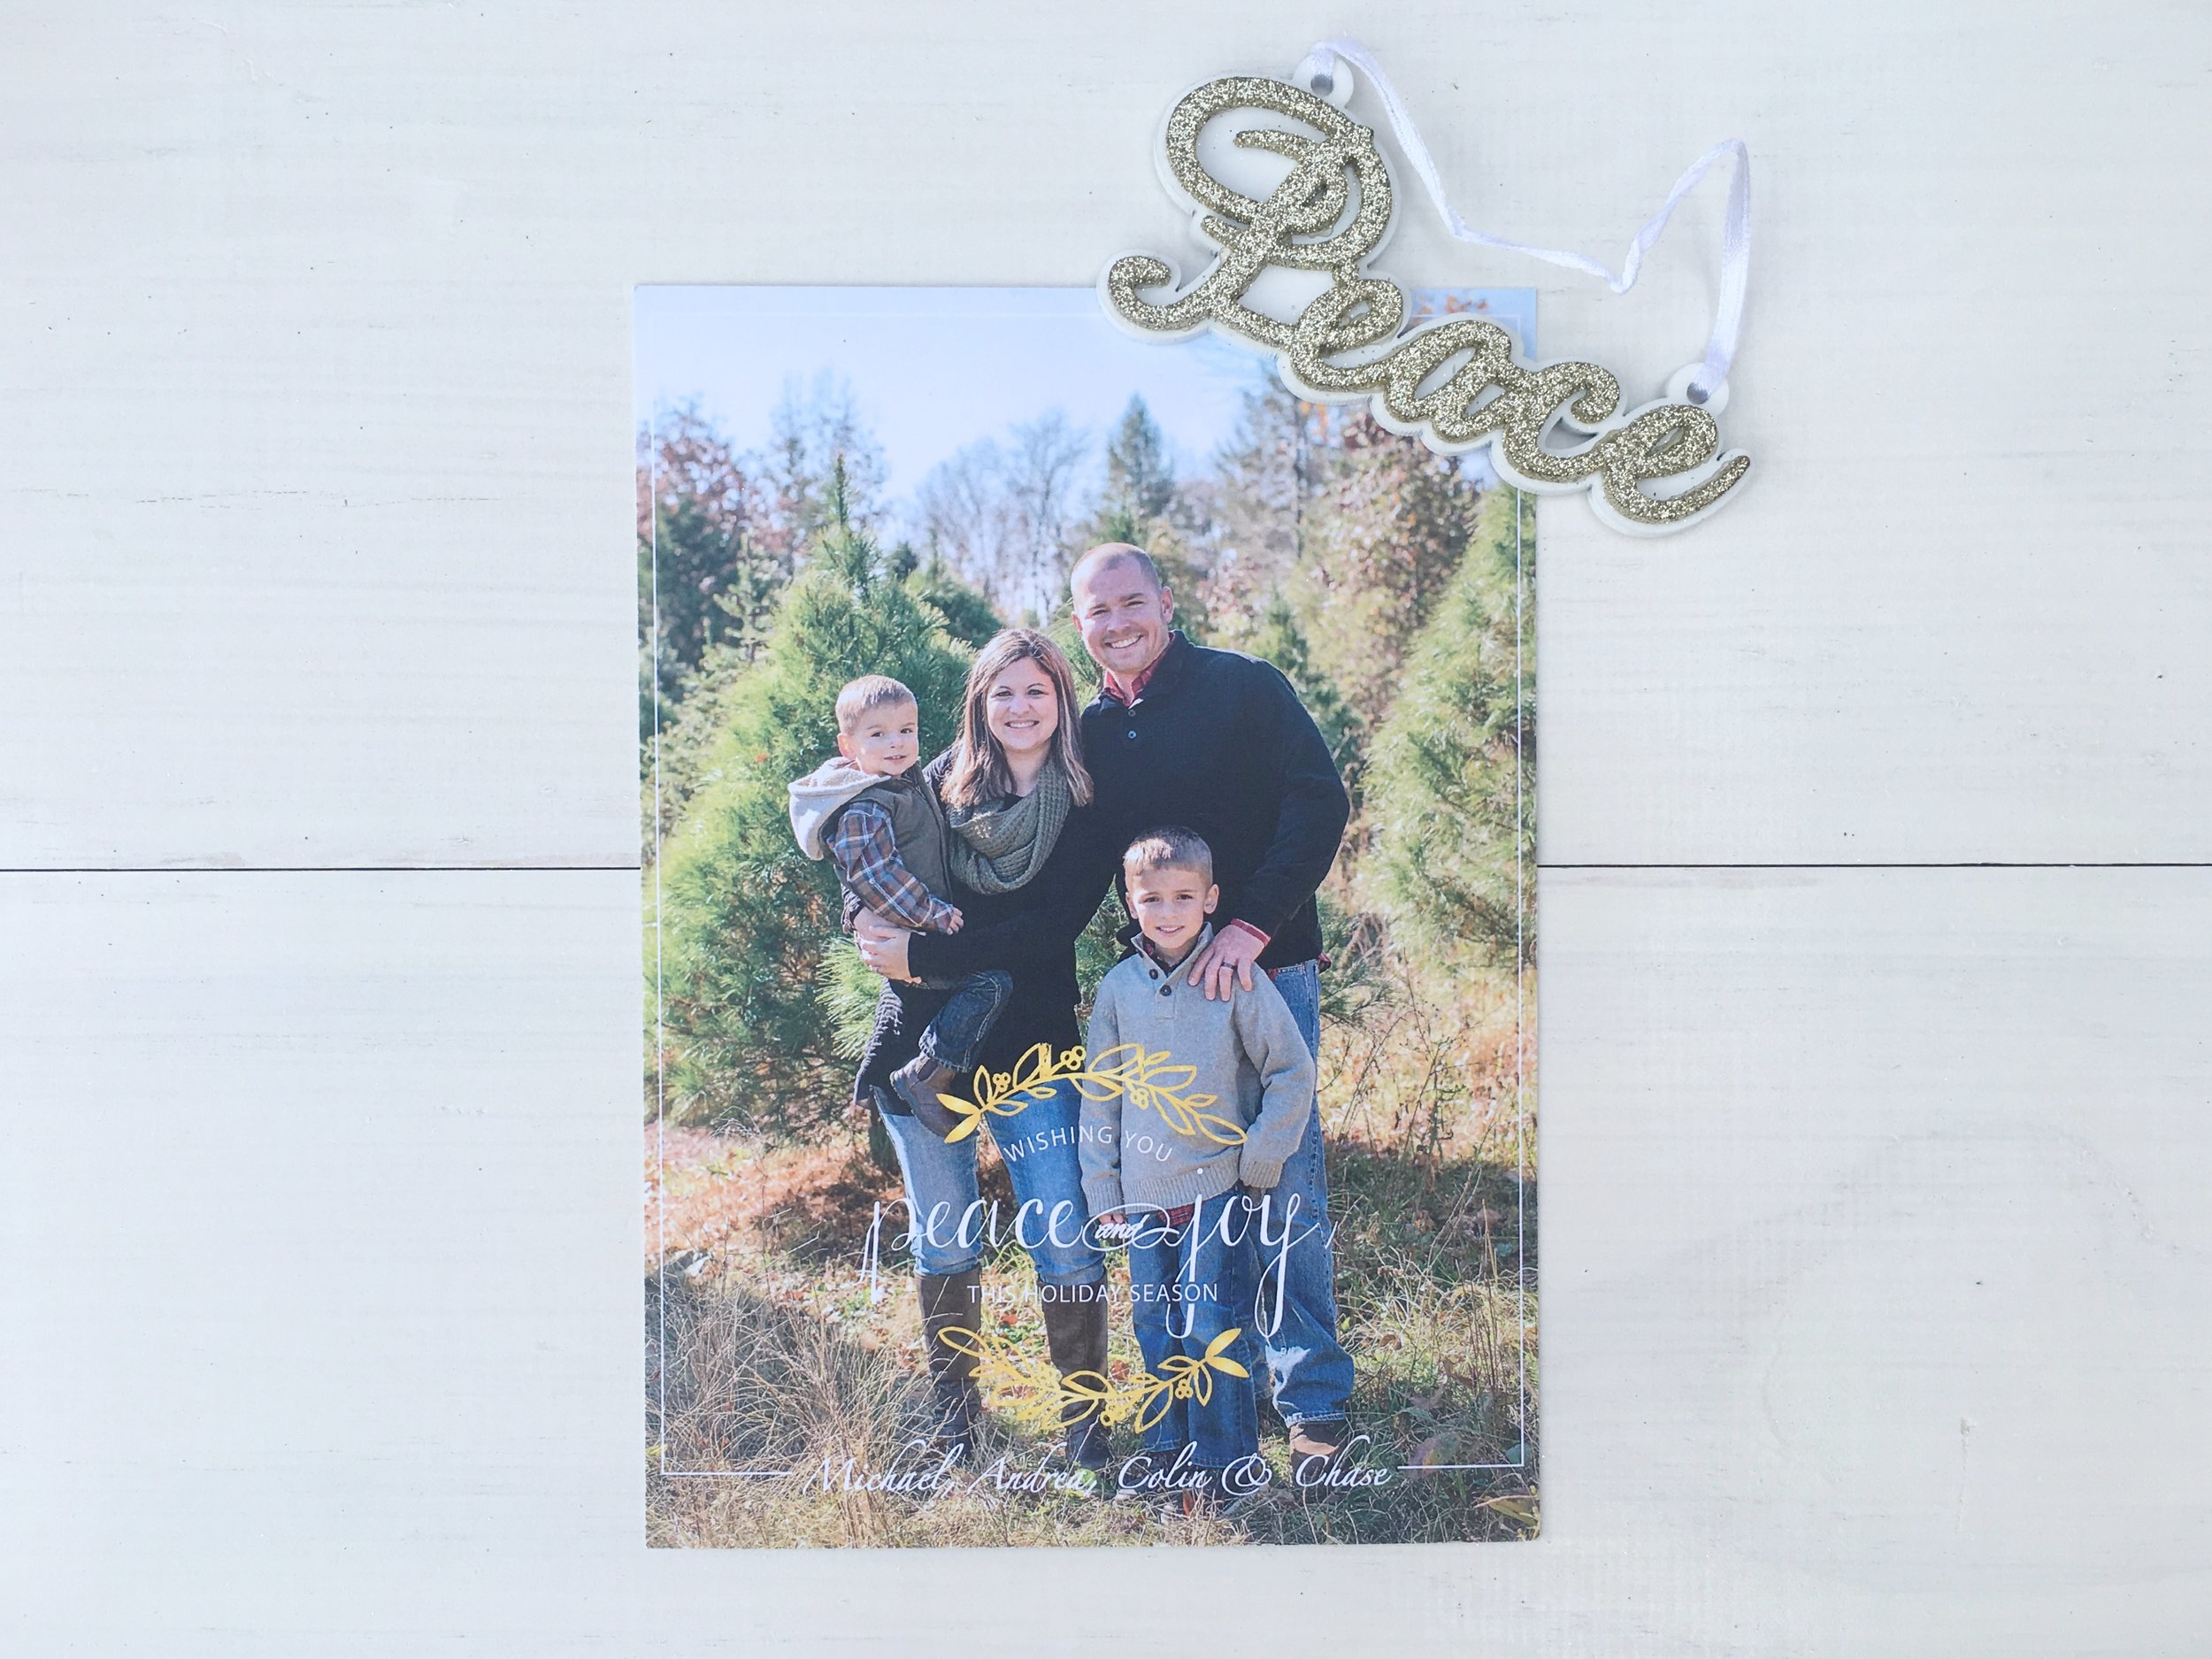 jsd peace and joy christmas tree holiday card.jpg